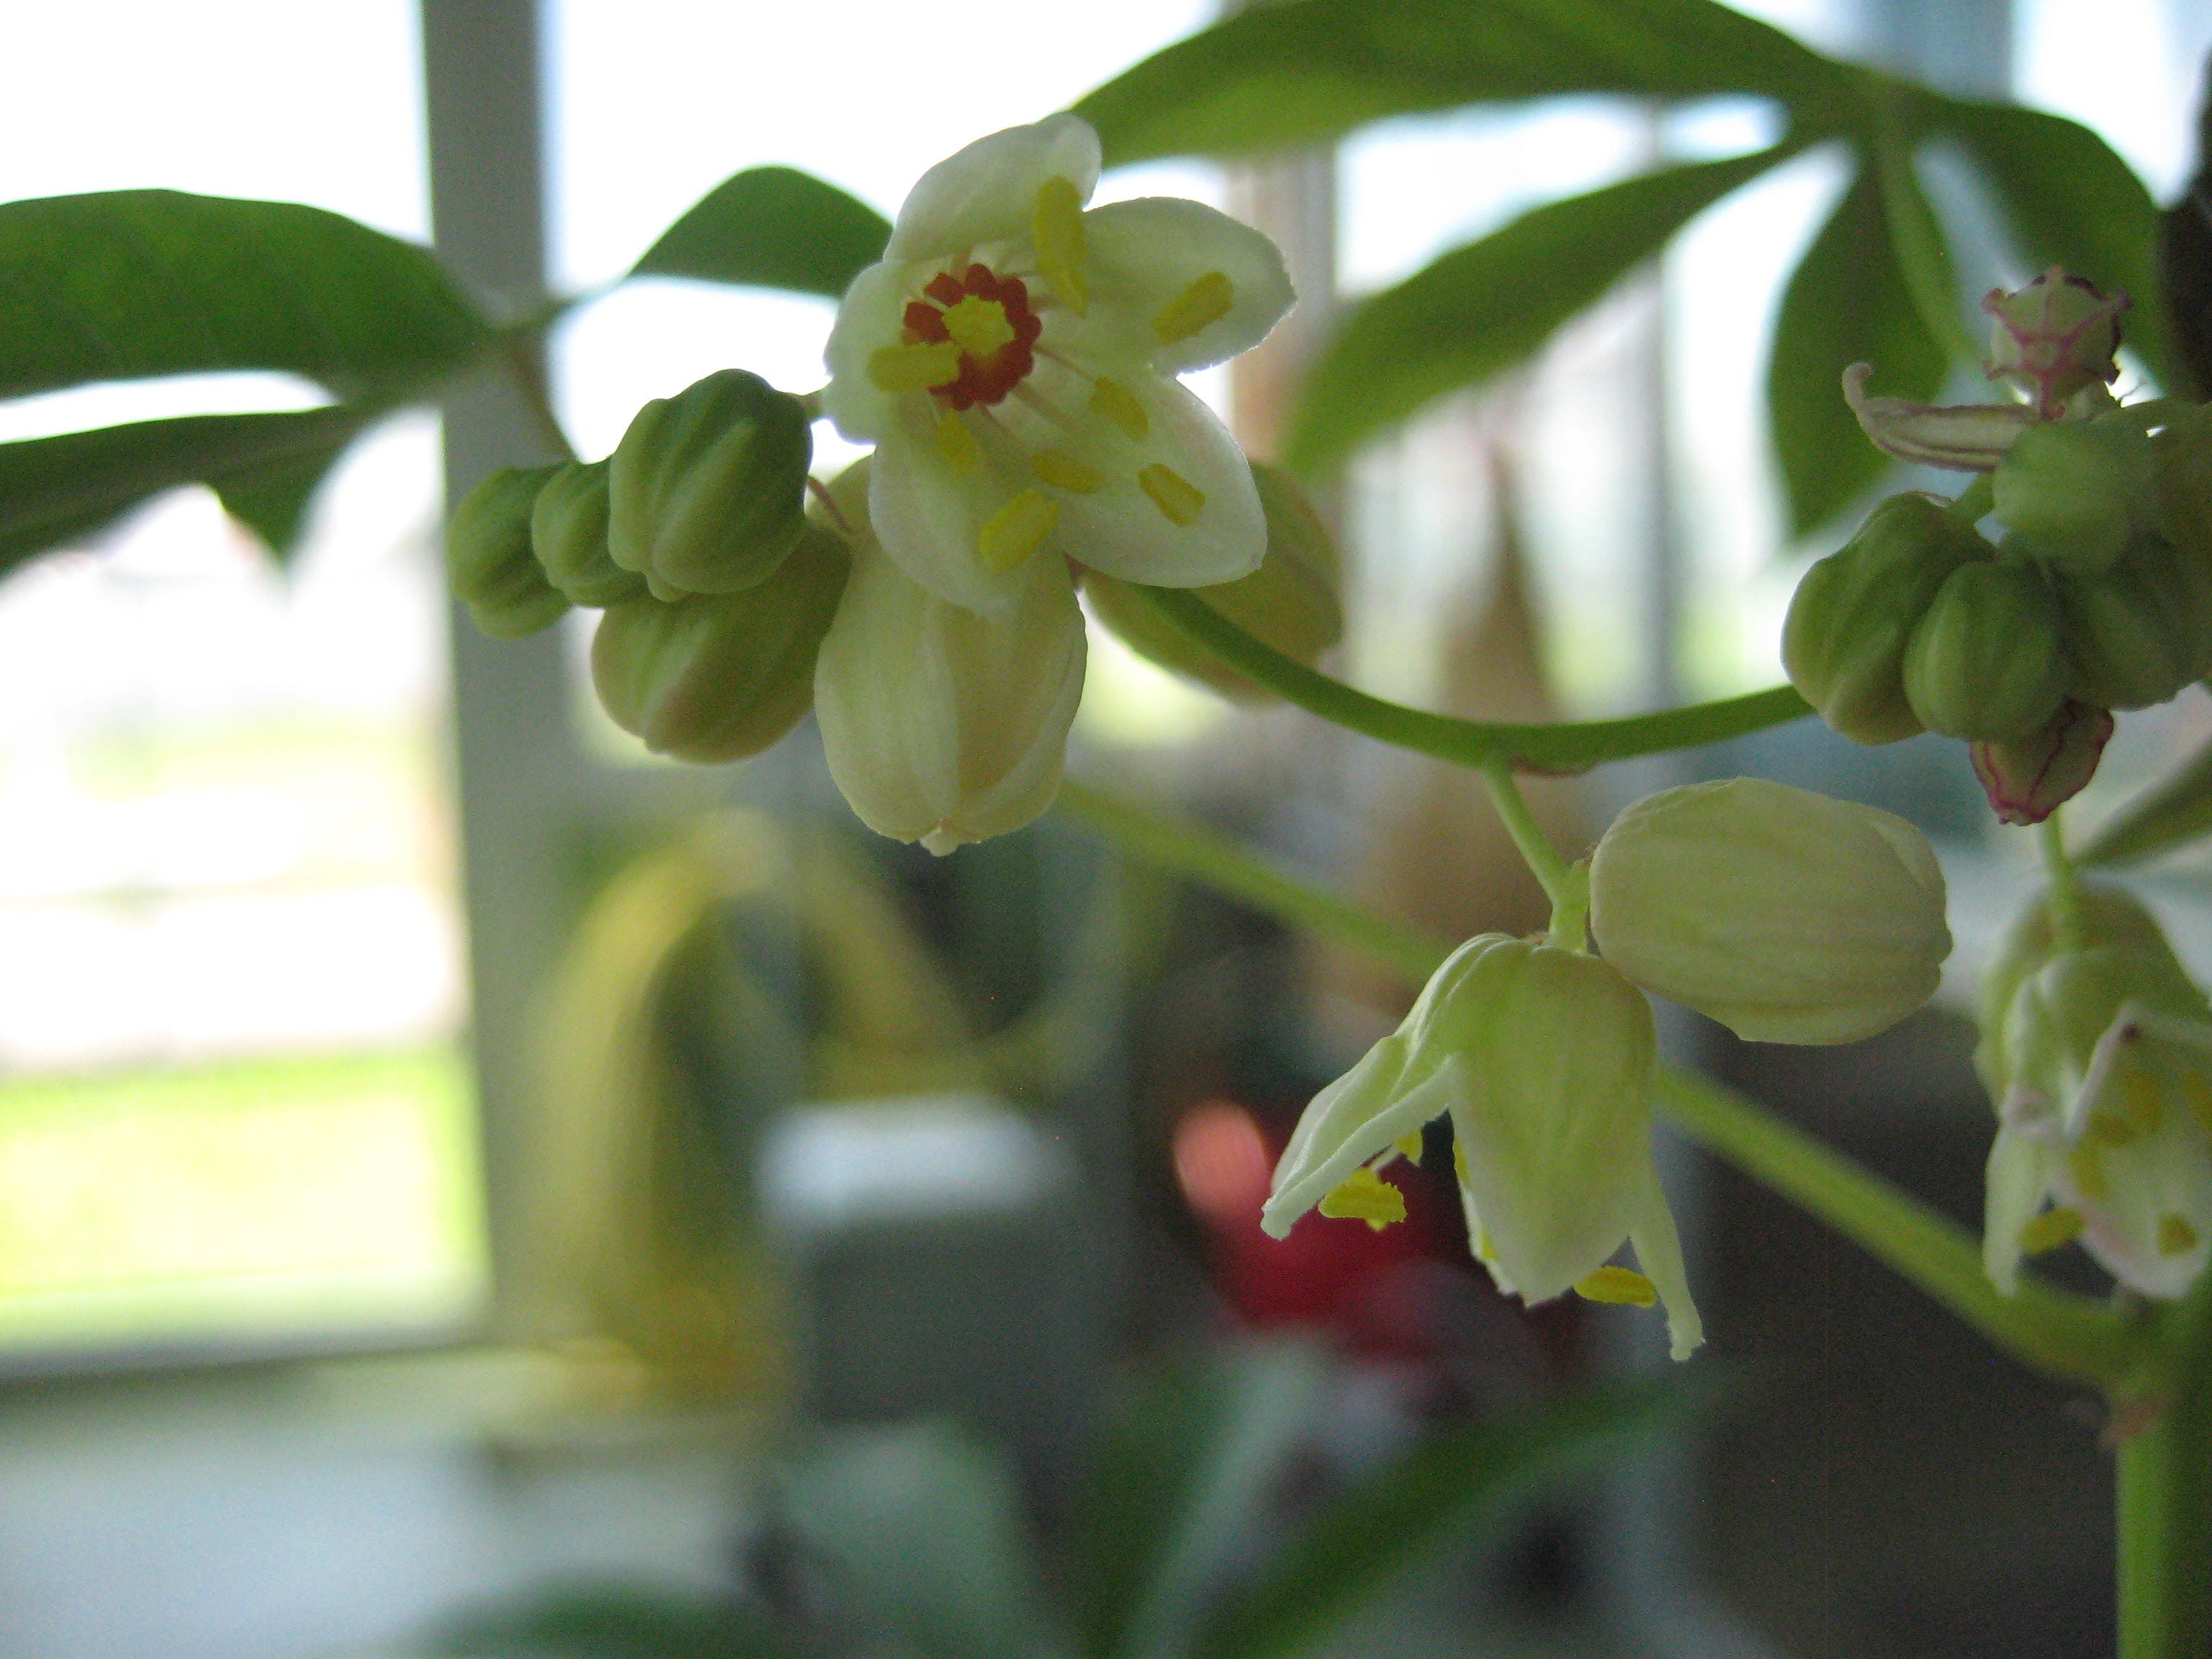 Small flowers of the Cassava plant with pale yellow petals and bright red centers